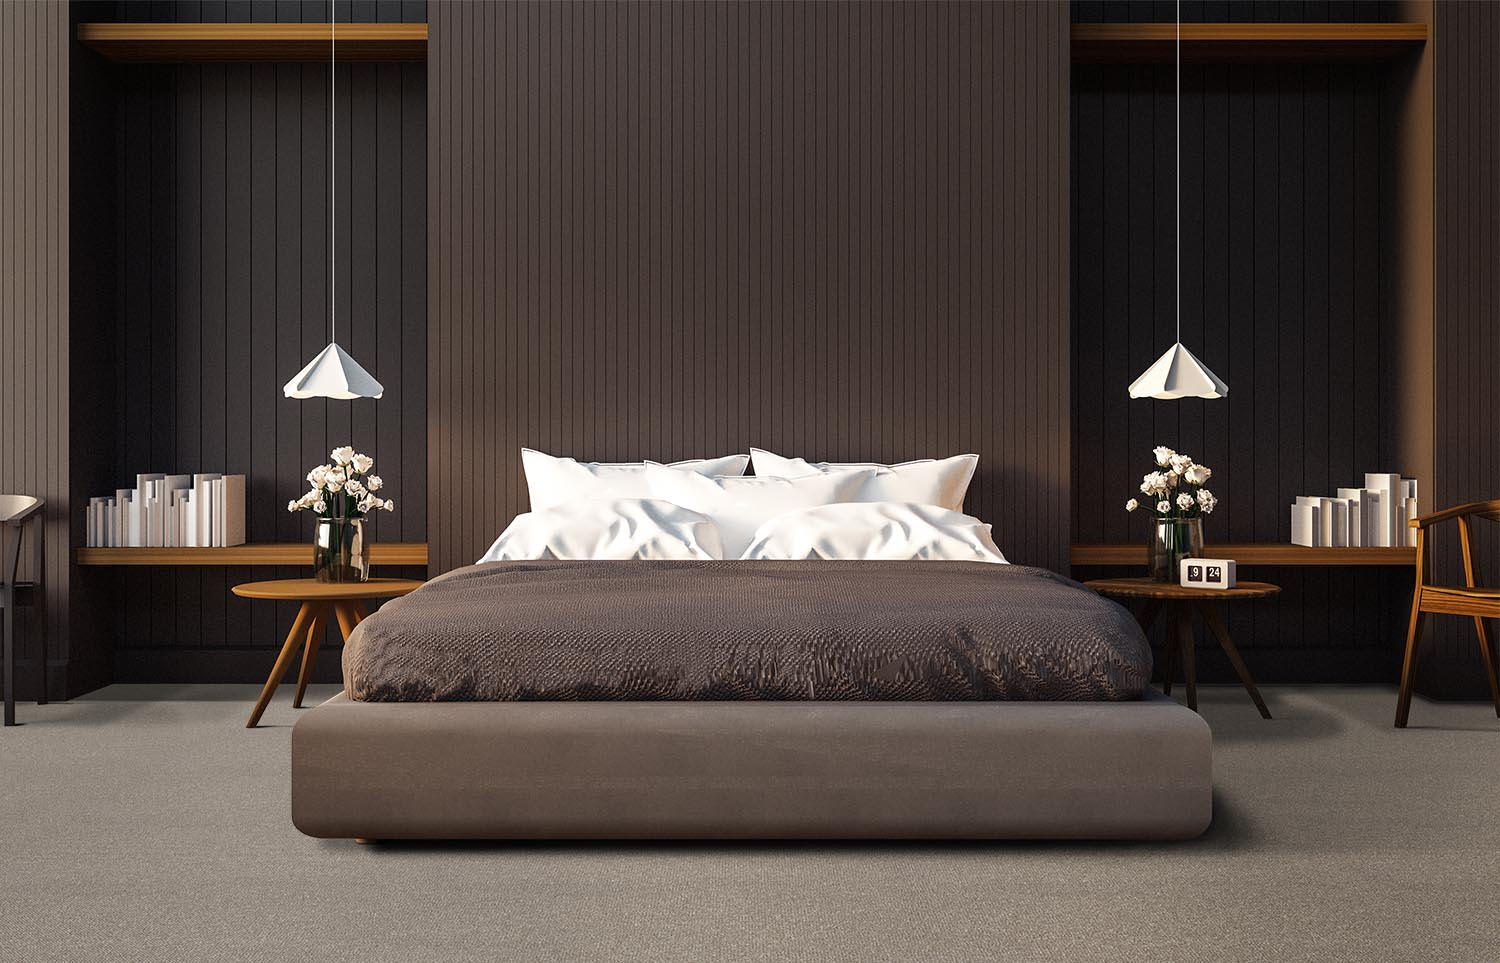 Inclusive - Come Together contemporary bedroom